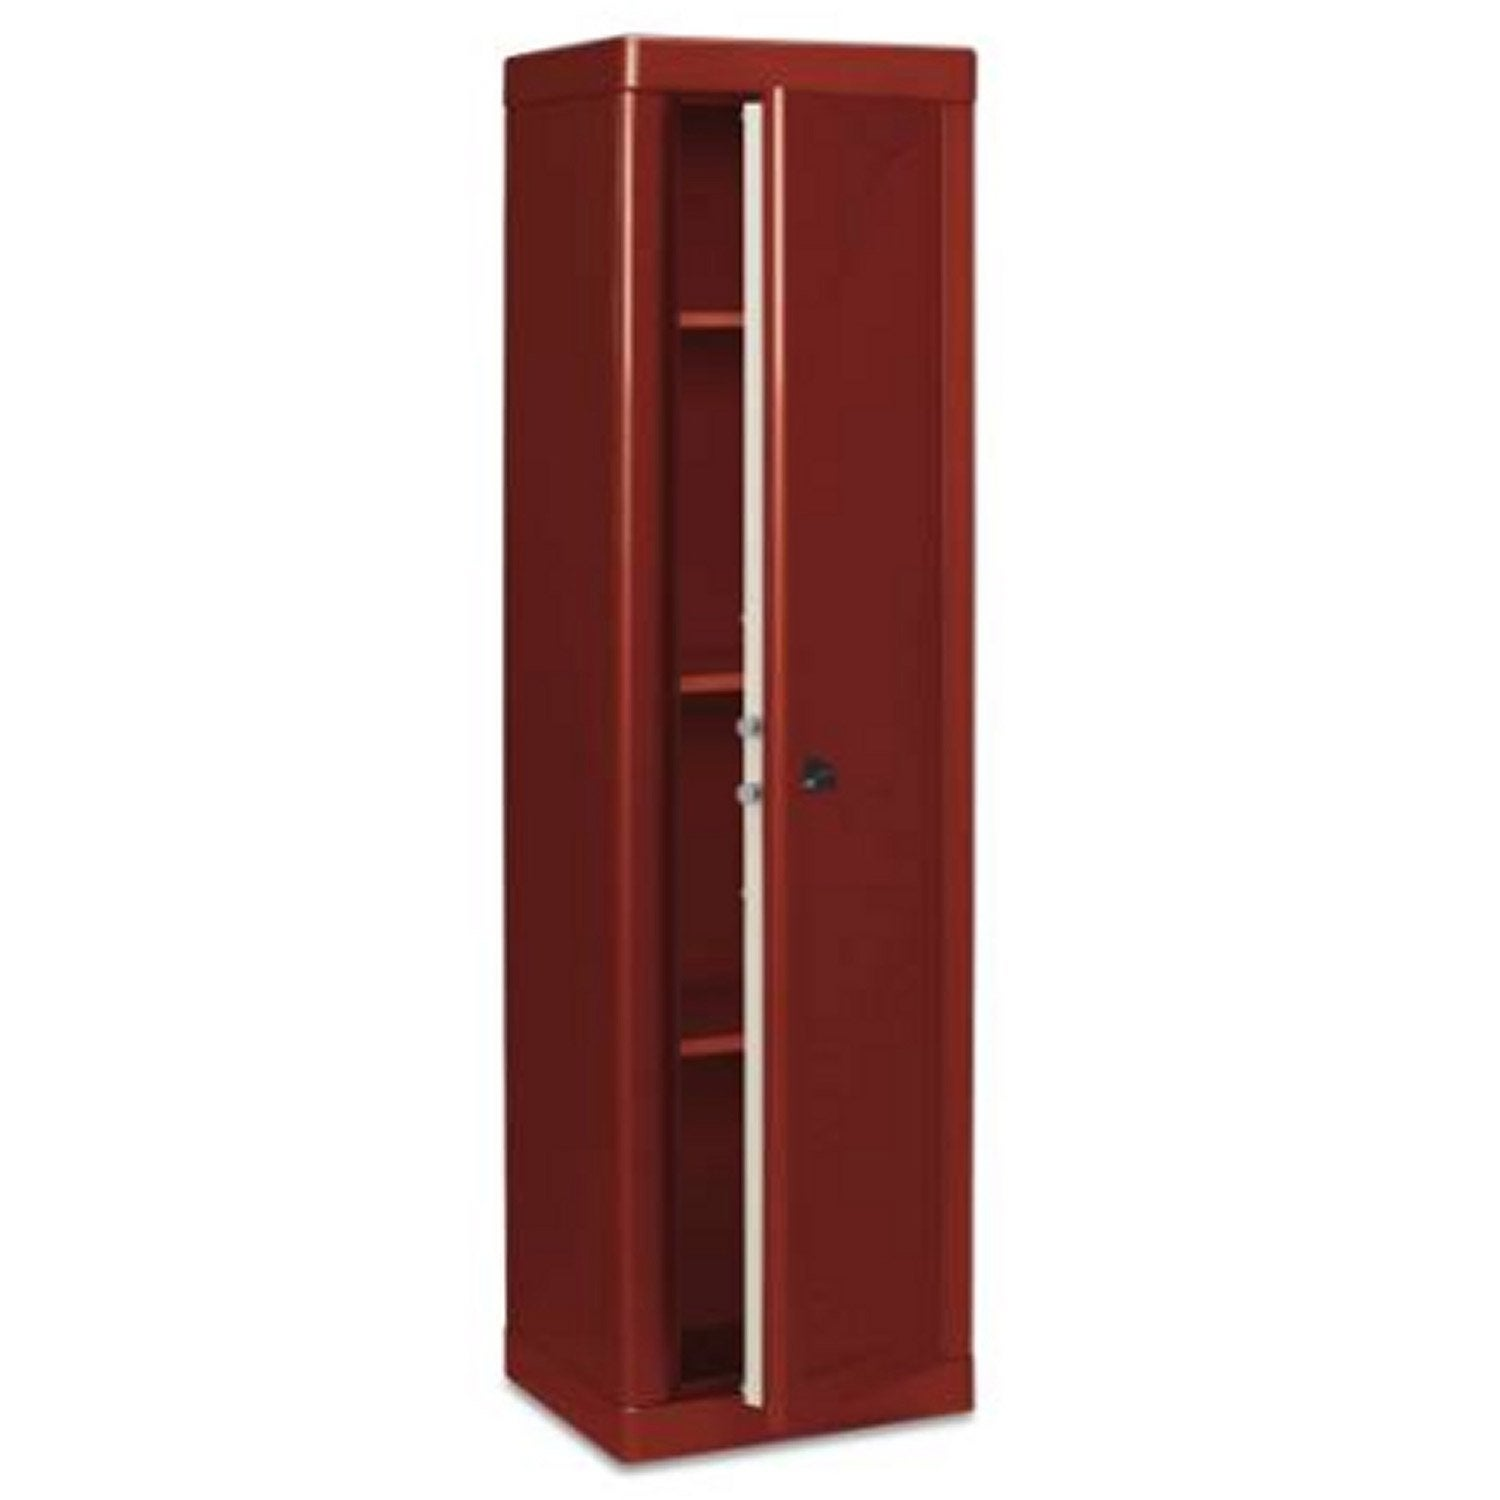 armoire fusils cl 6 fusils stark l4601bo x x cm leroy merlin. Black Bedroom Furniture Sets. Home Design Ideas